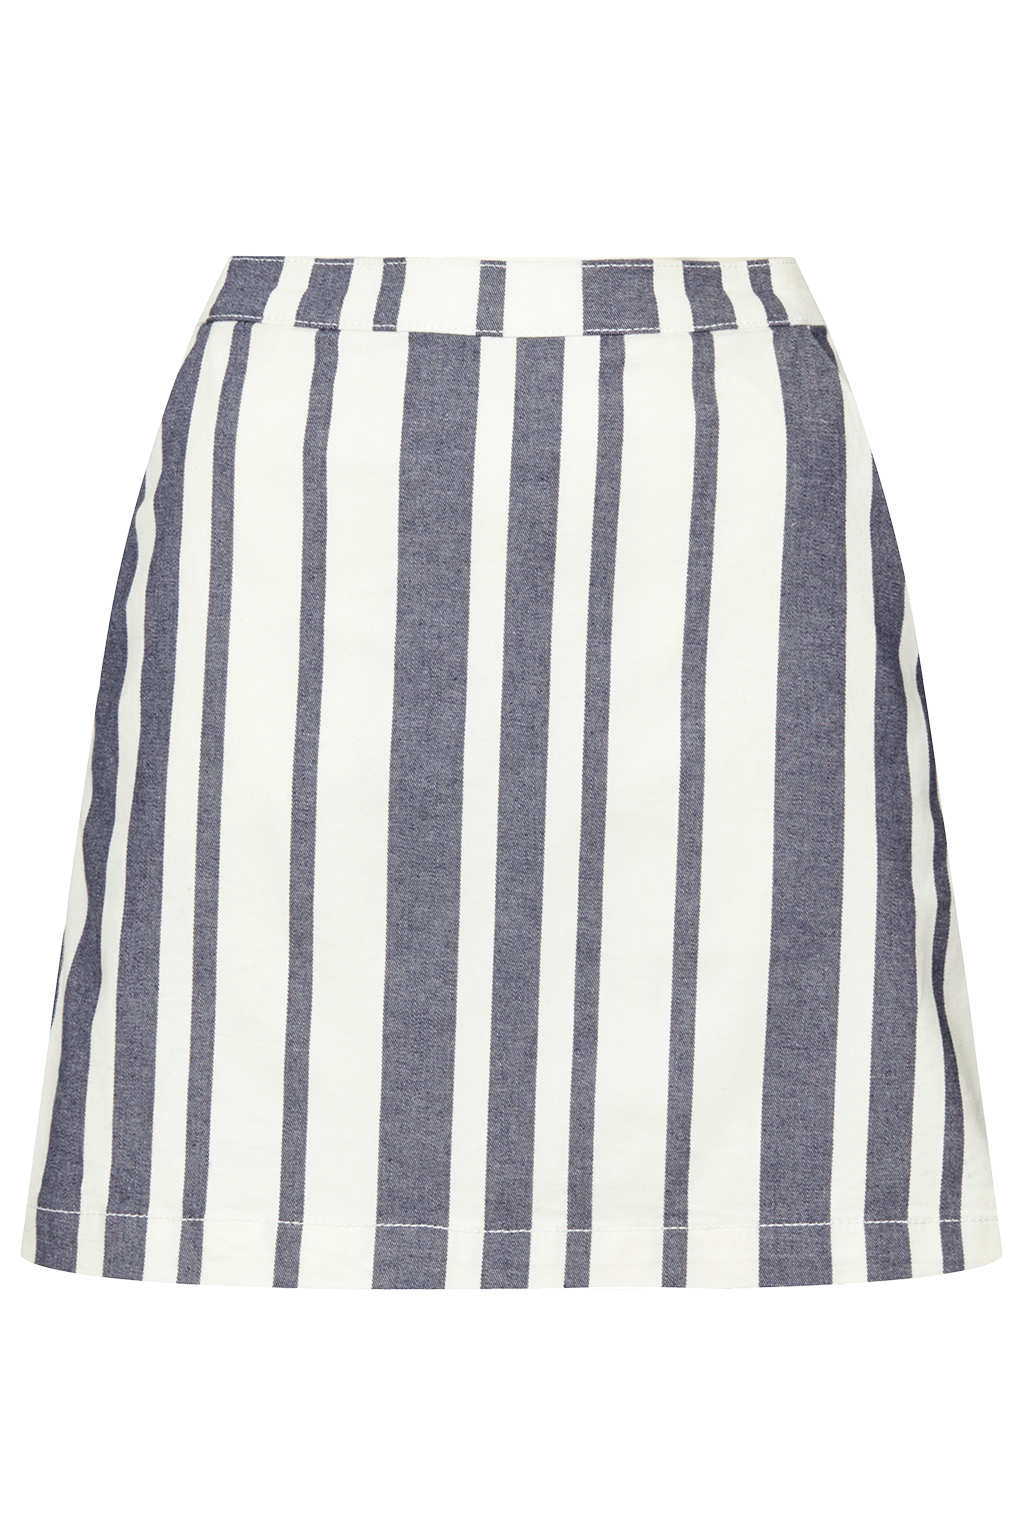 Stripe Denim Skirt - Skirts - Clothing